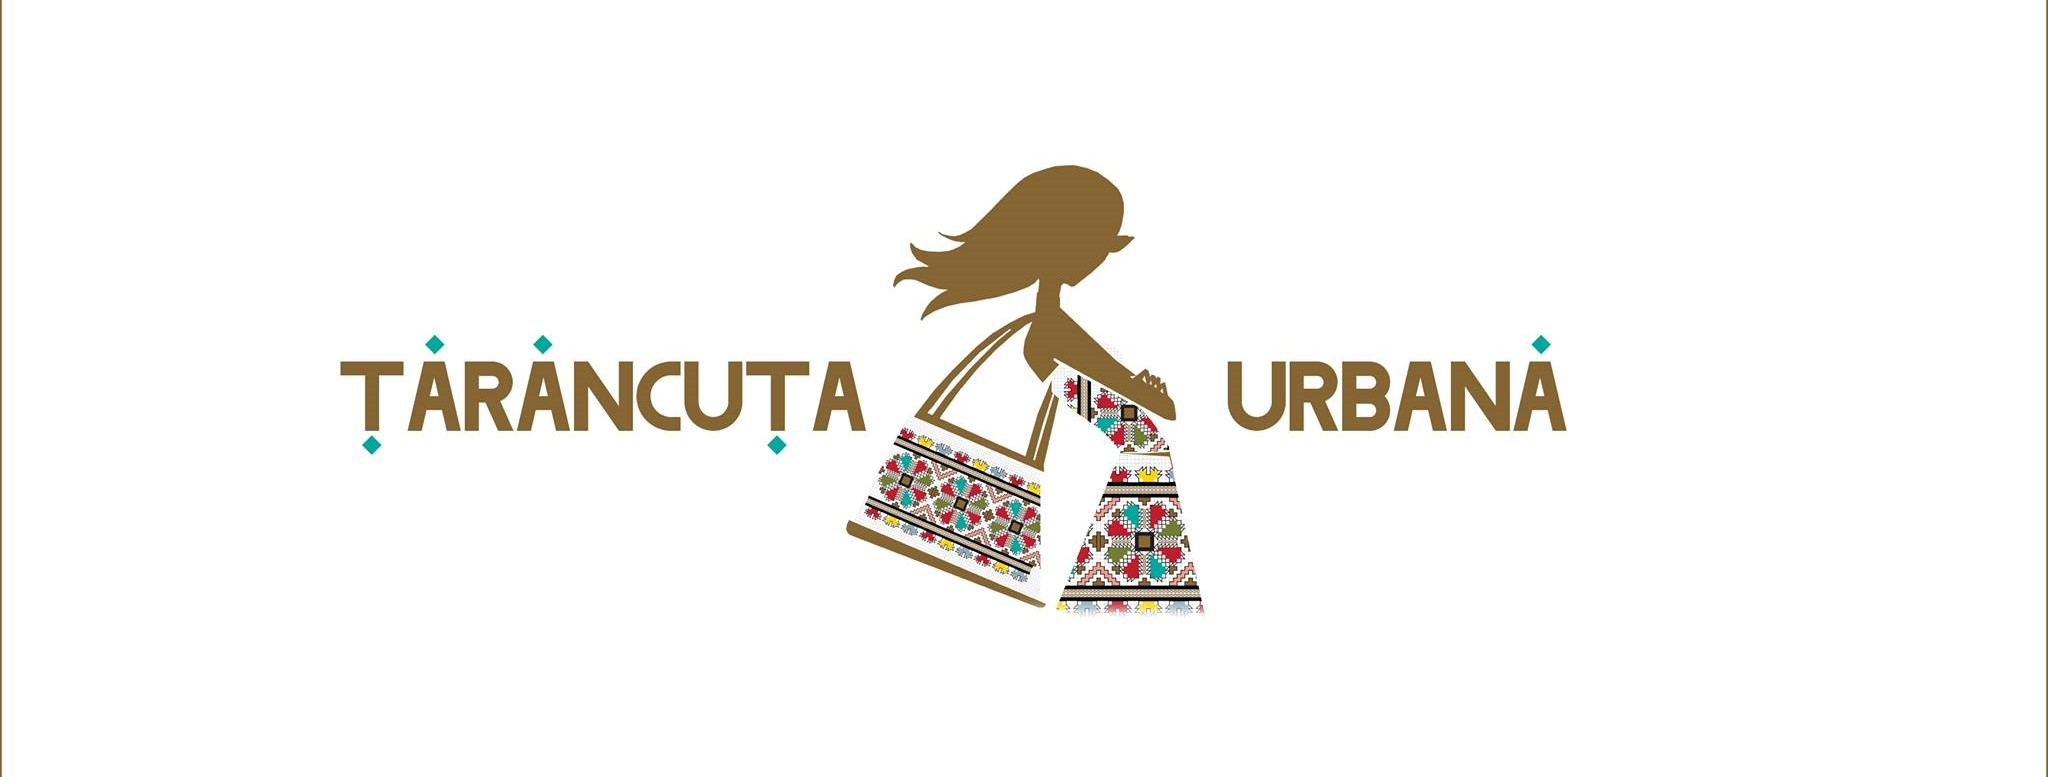 Țărăncuța Urbană | Official website